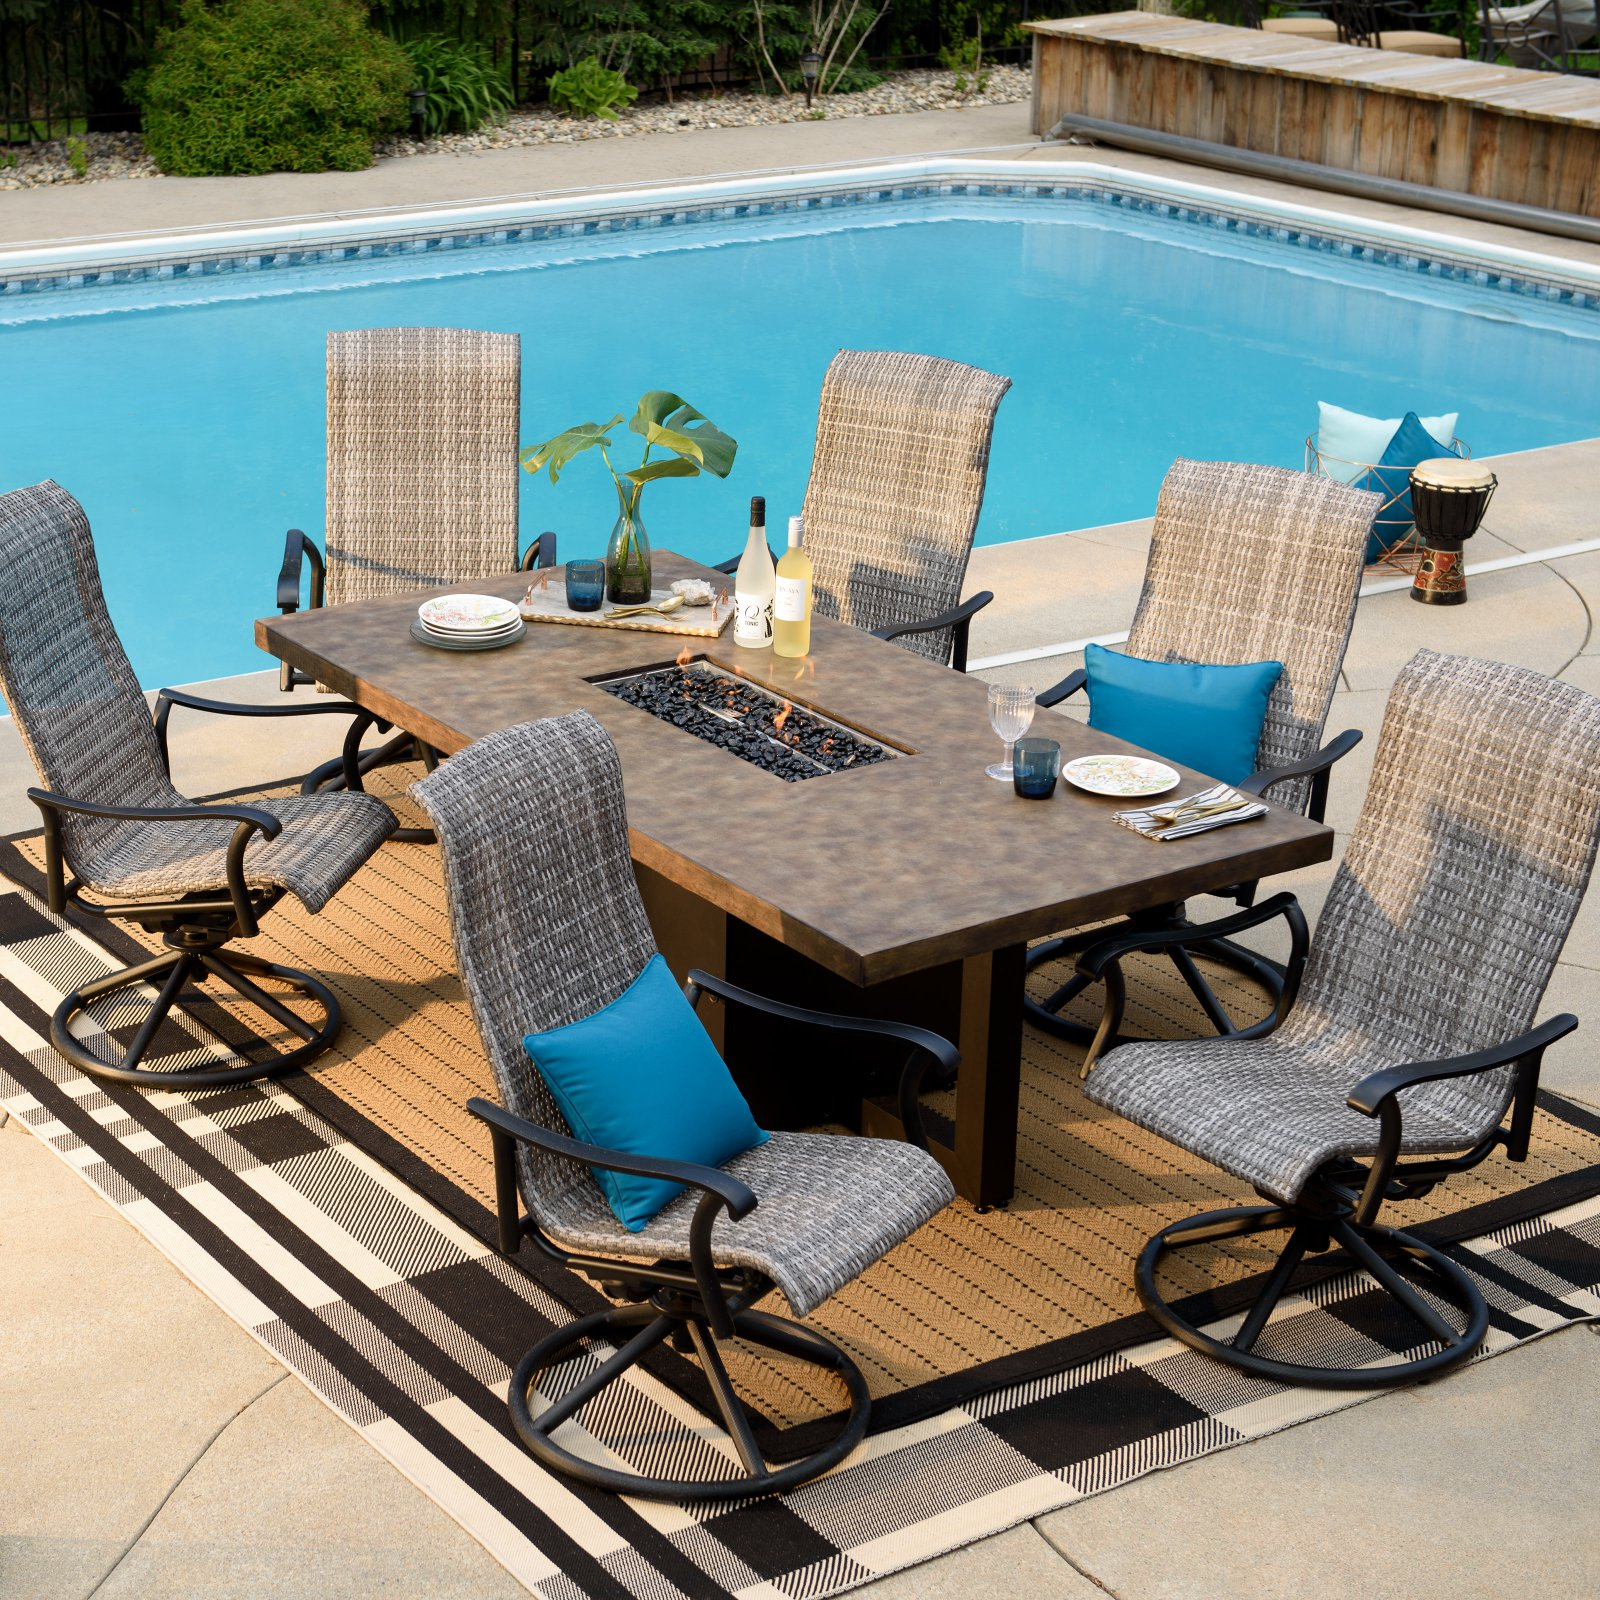 Belham Living Denton 7 Piece Fire Table Patio Dining Room Set by